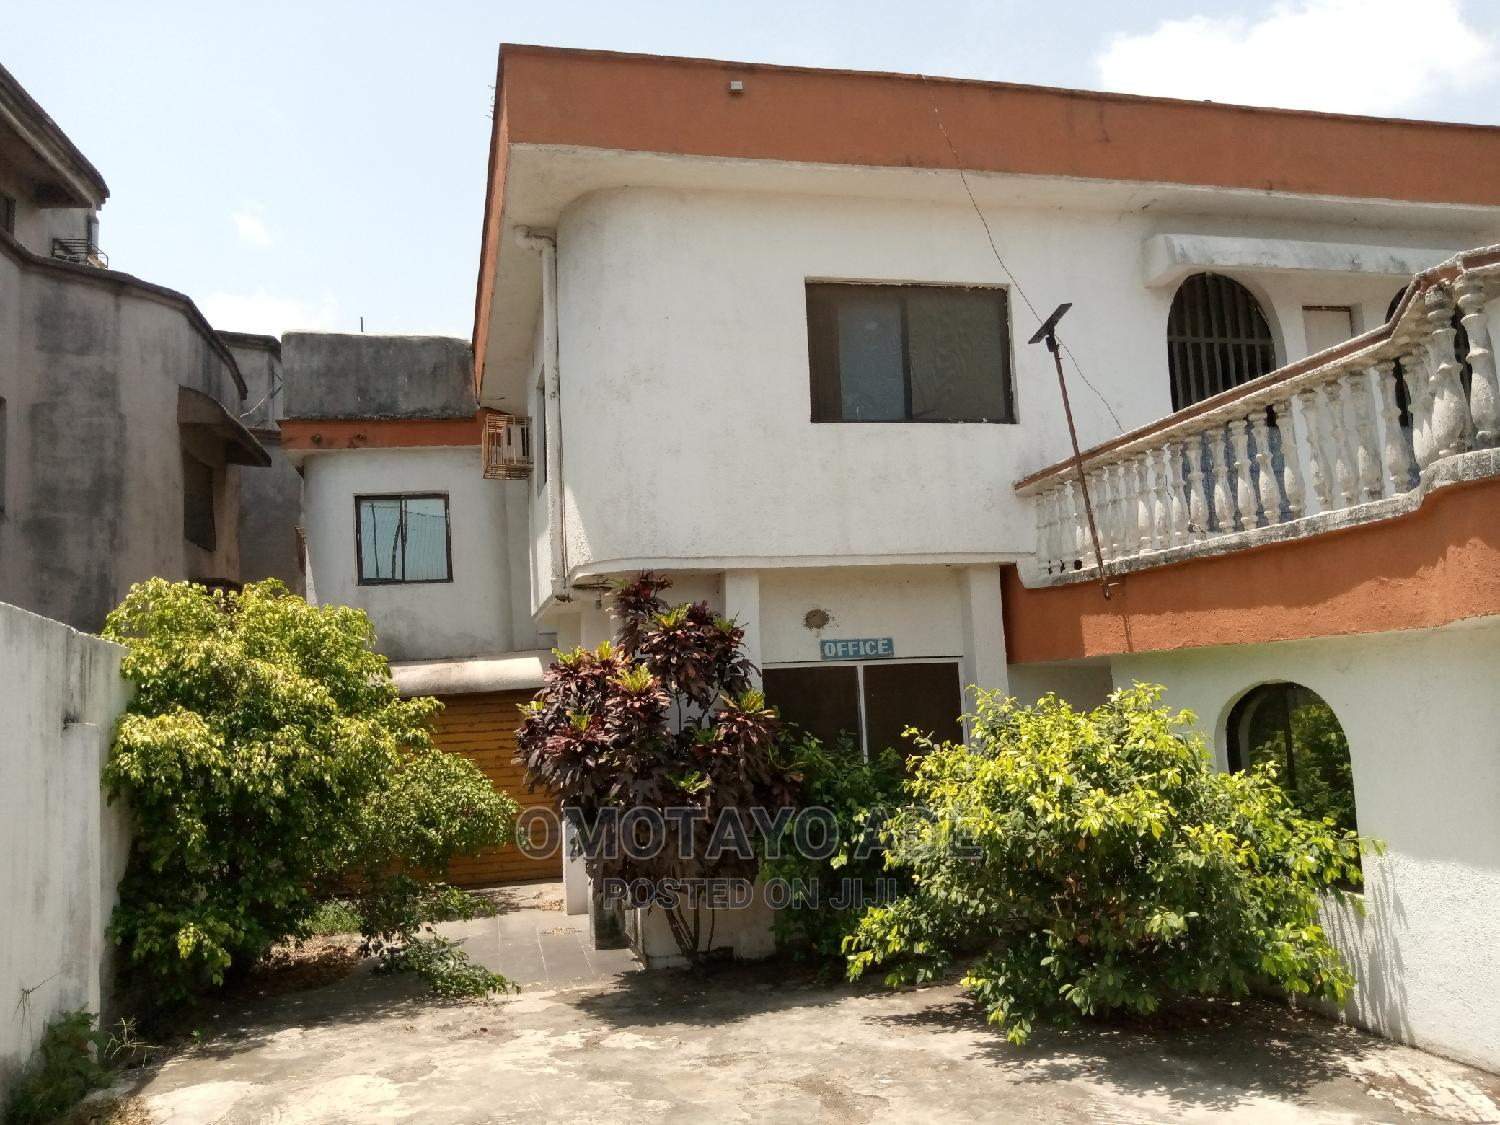 7 Bedroom Detached Duplex With C of O/ Survey Plan | Commercial Property For Sale for sale in Ojo, Lagos State, Nigeria